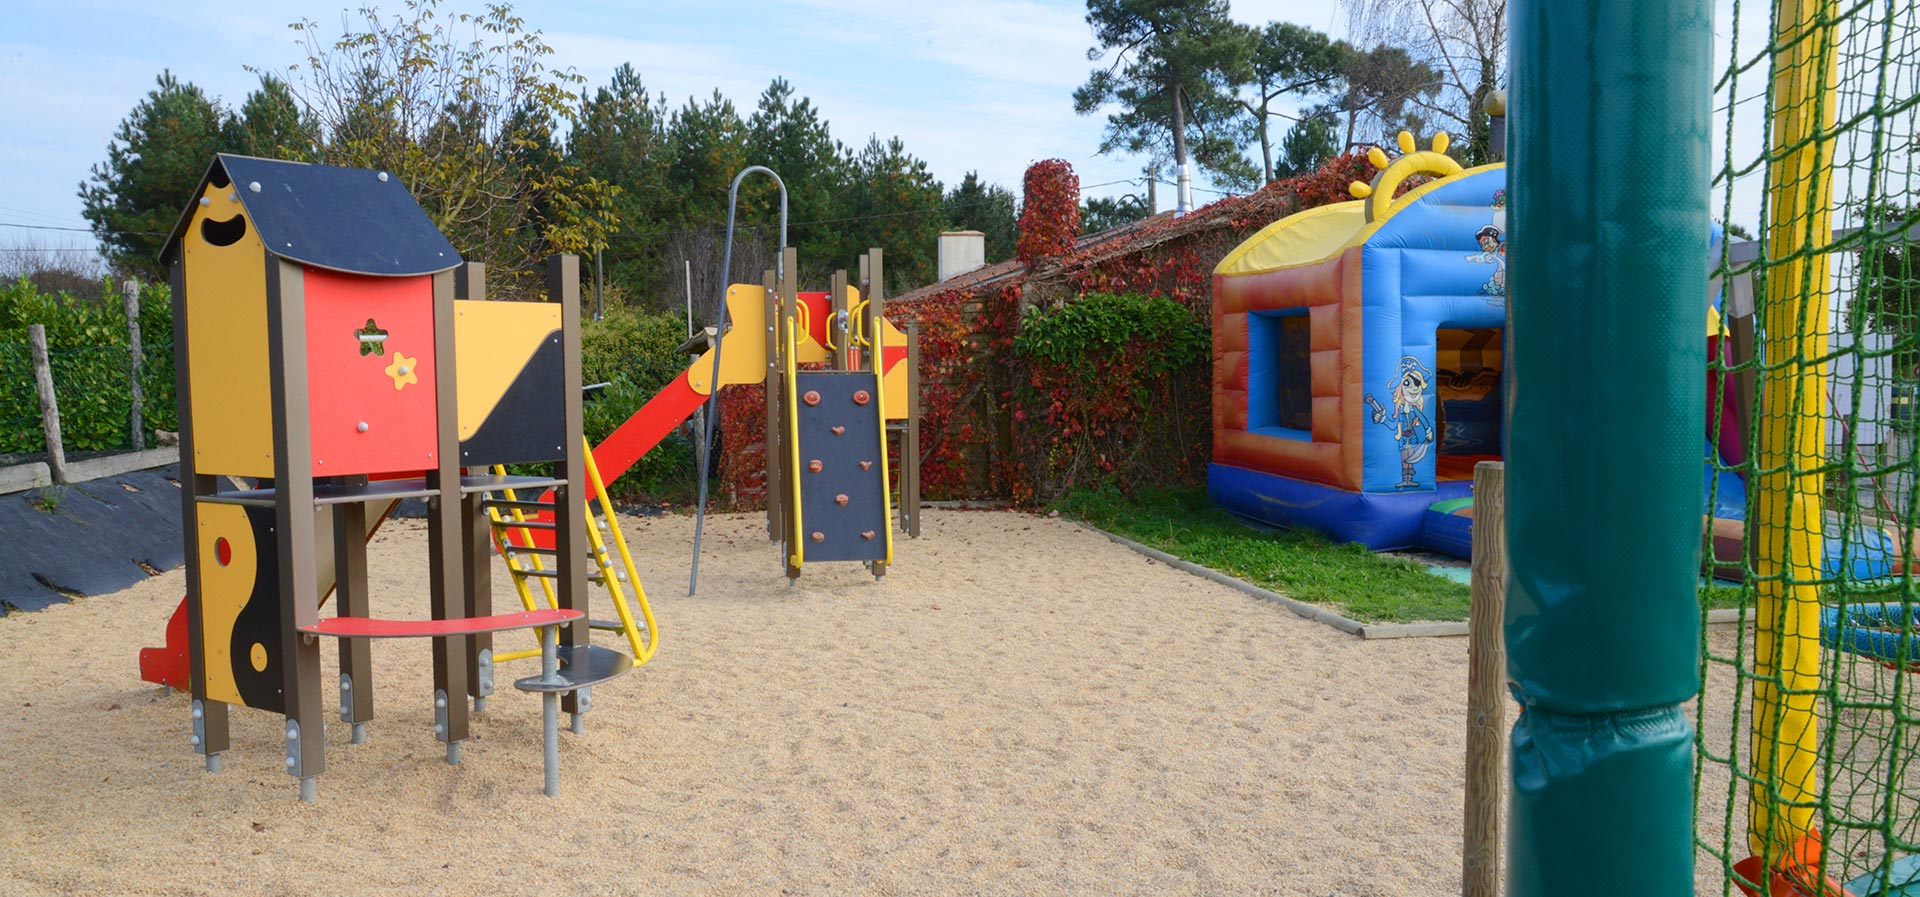 Play area for children